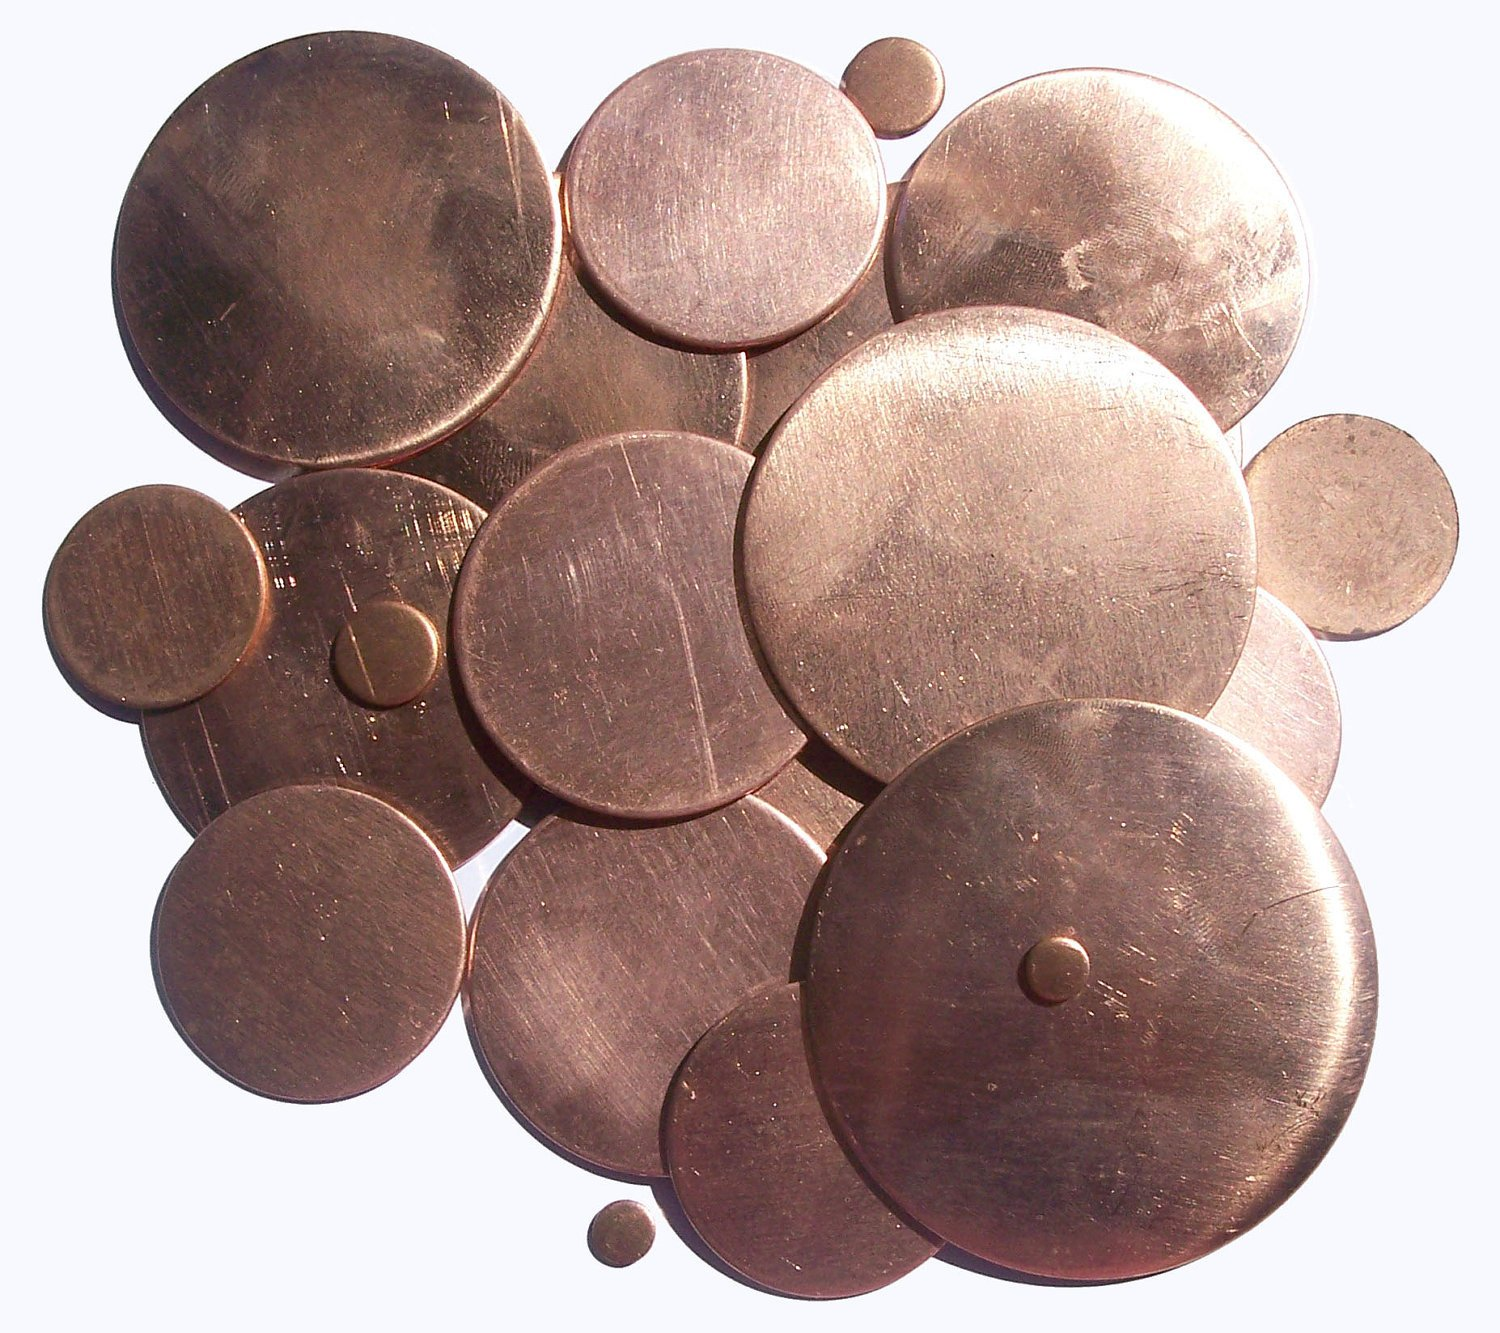 Copper 20mm Blank Disc 24g Enameling Stamping Texturing Blanks - Metalworking Supply - 6 Pieces